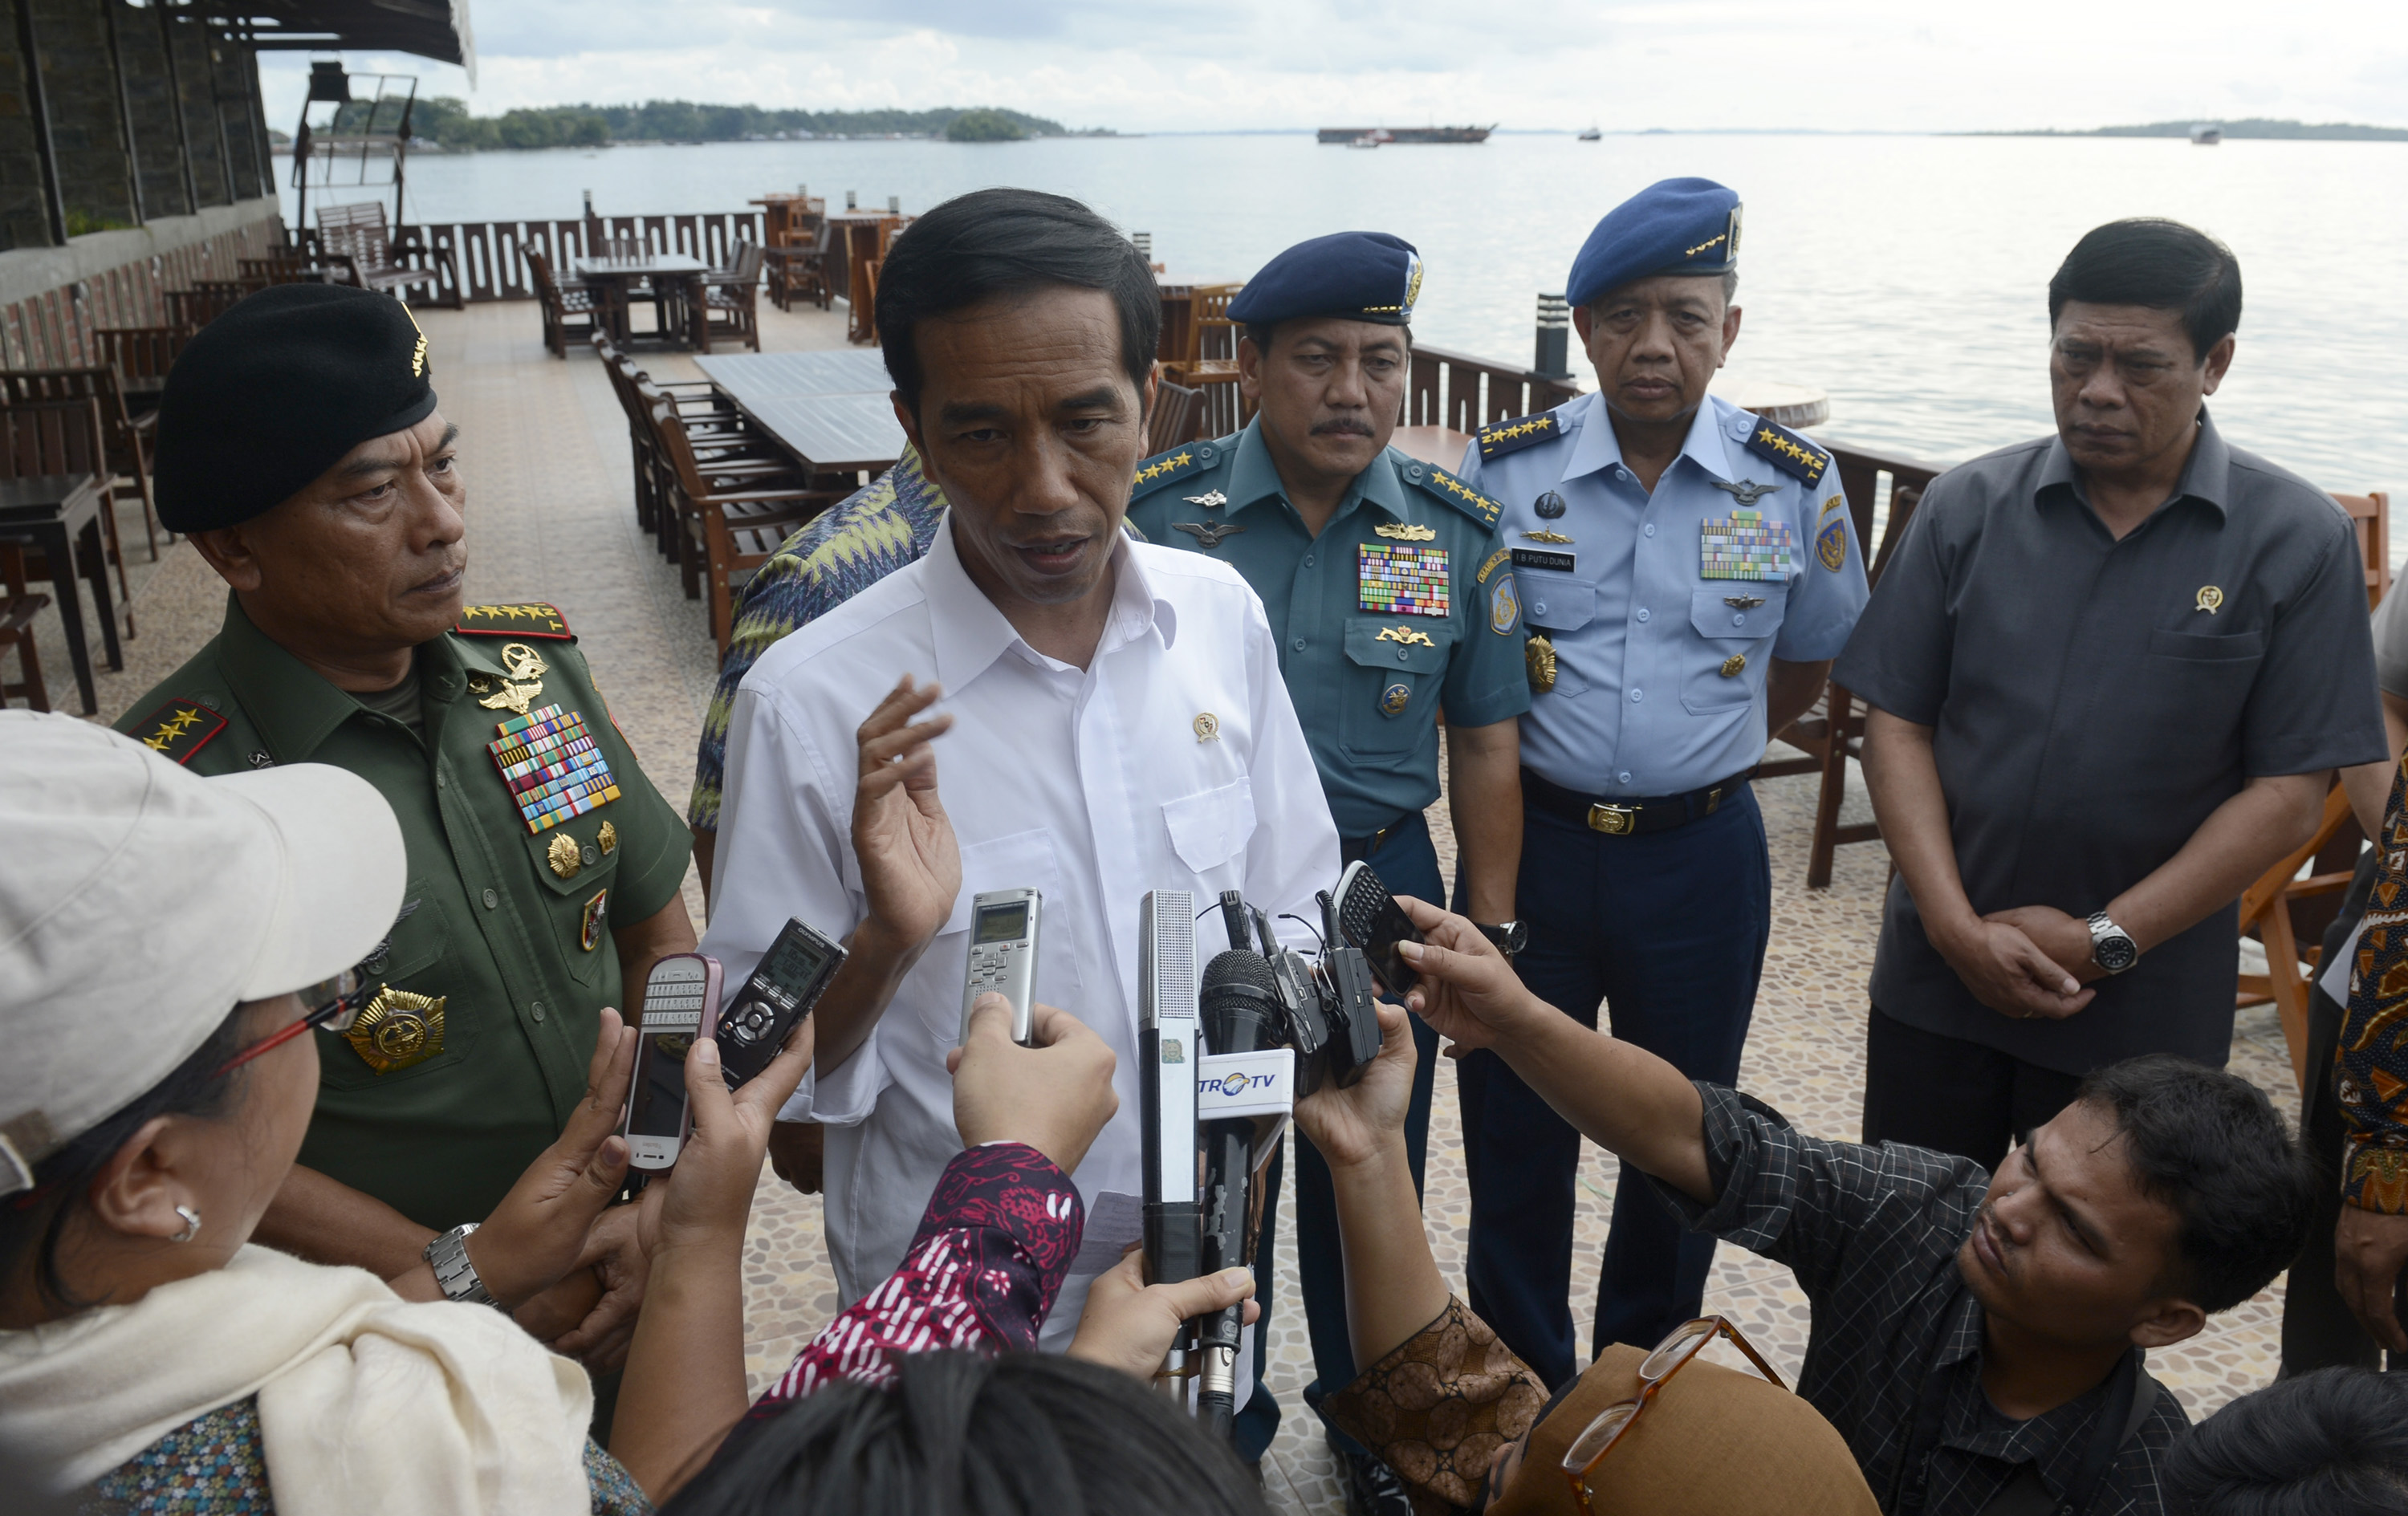 Indonesian President Joko Widodo, center, speaks to the media about AirAsia Flight QZ 8501 in Sorong, West Papua, on Dec. 28, 2014